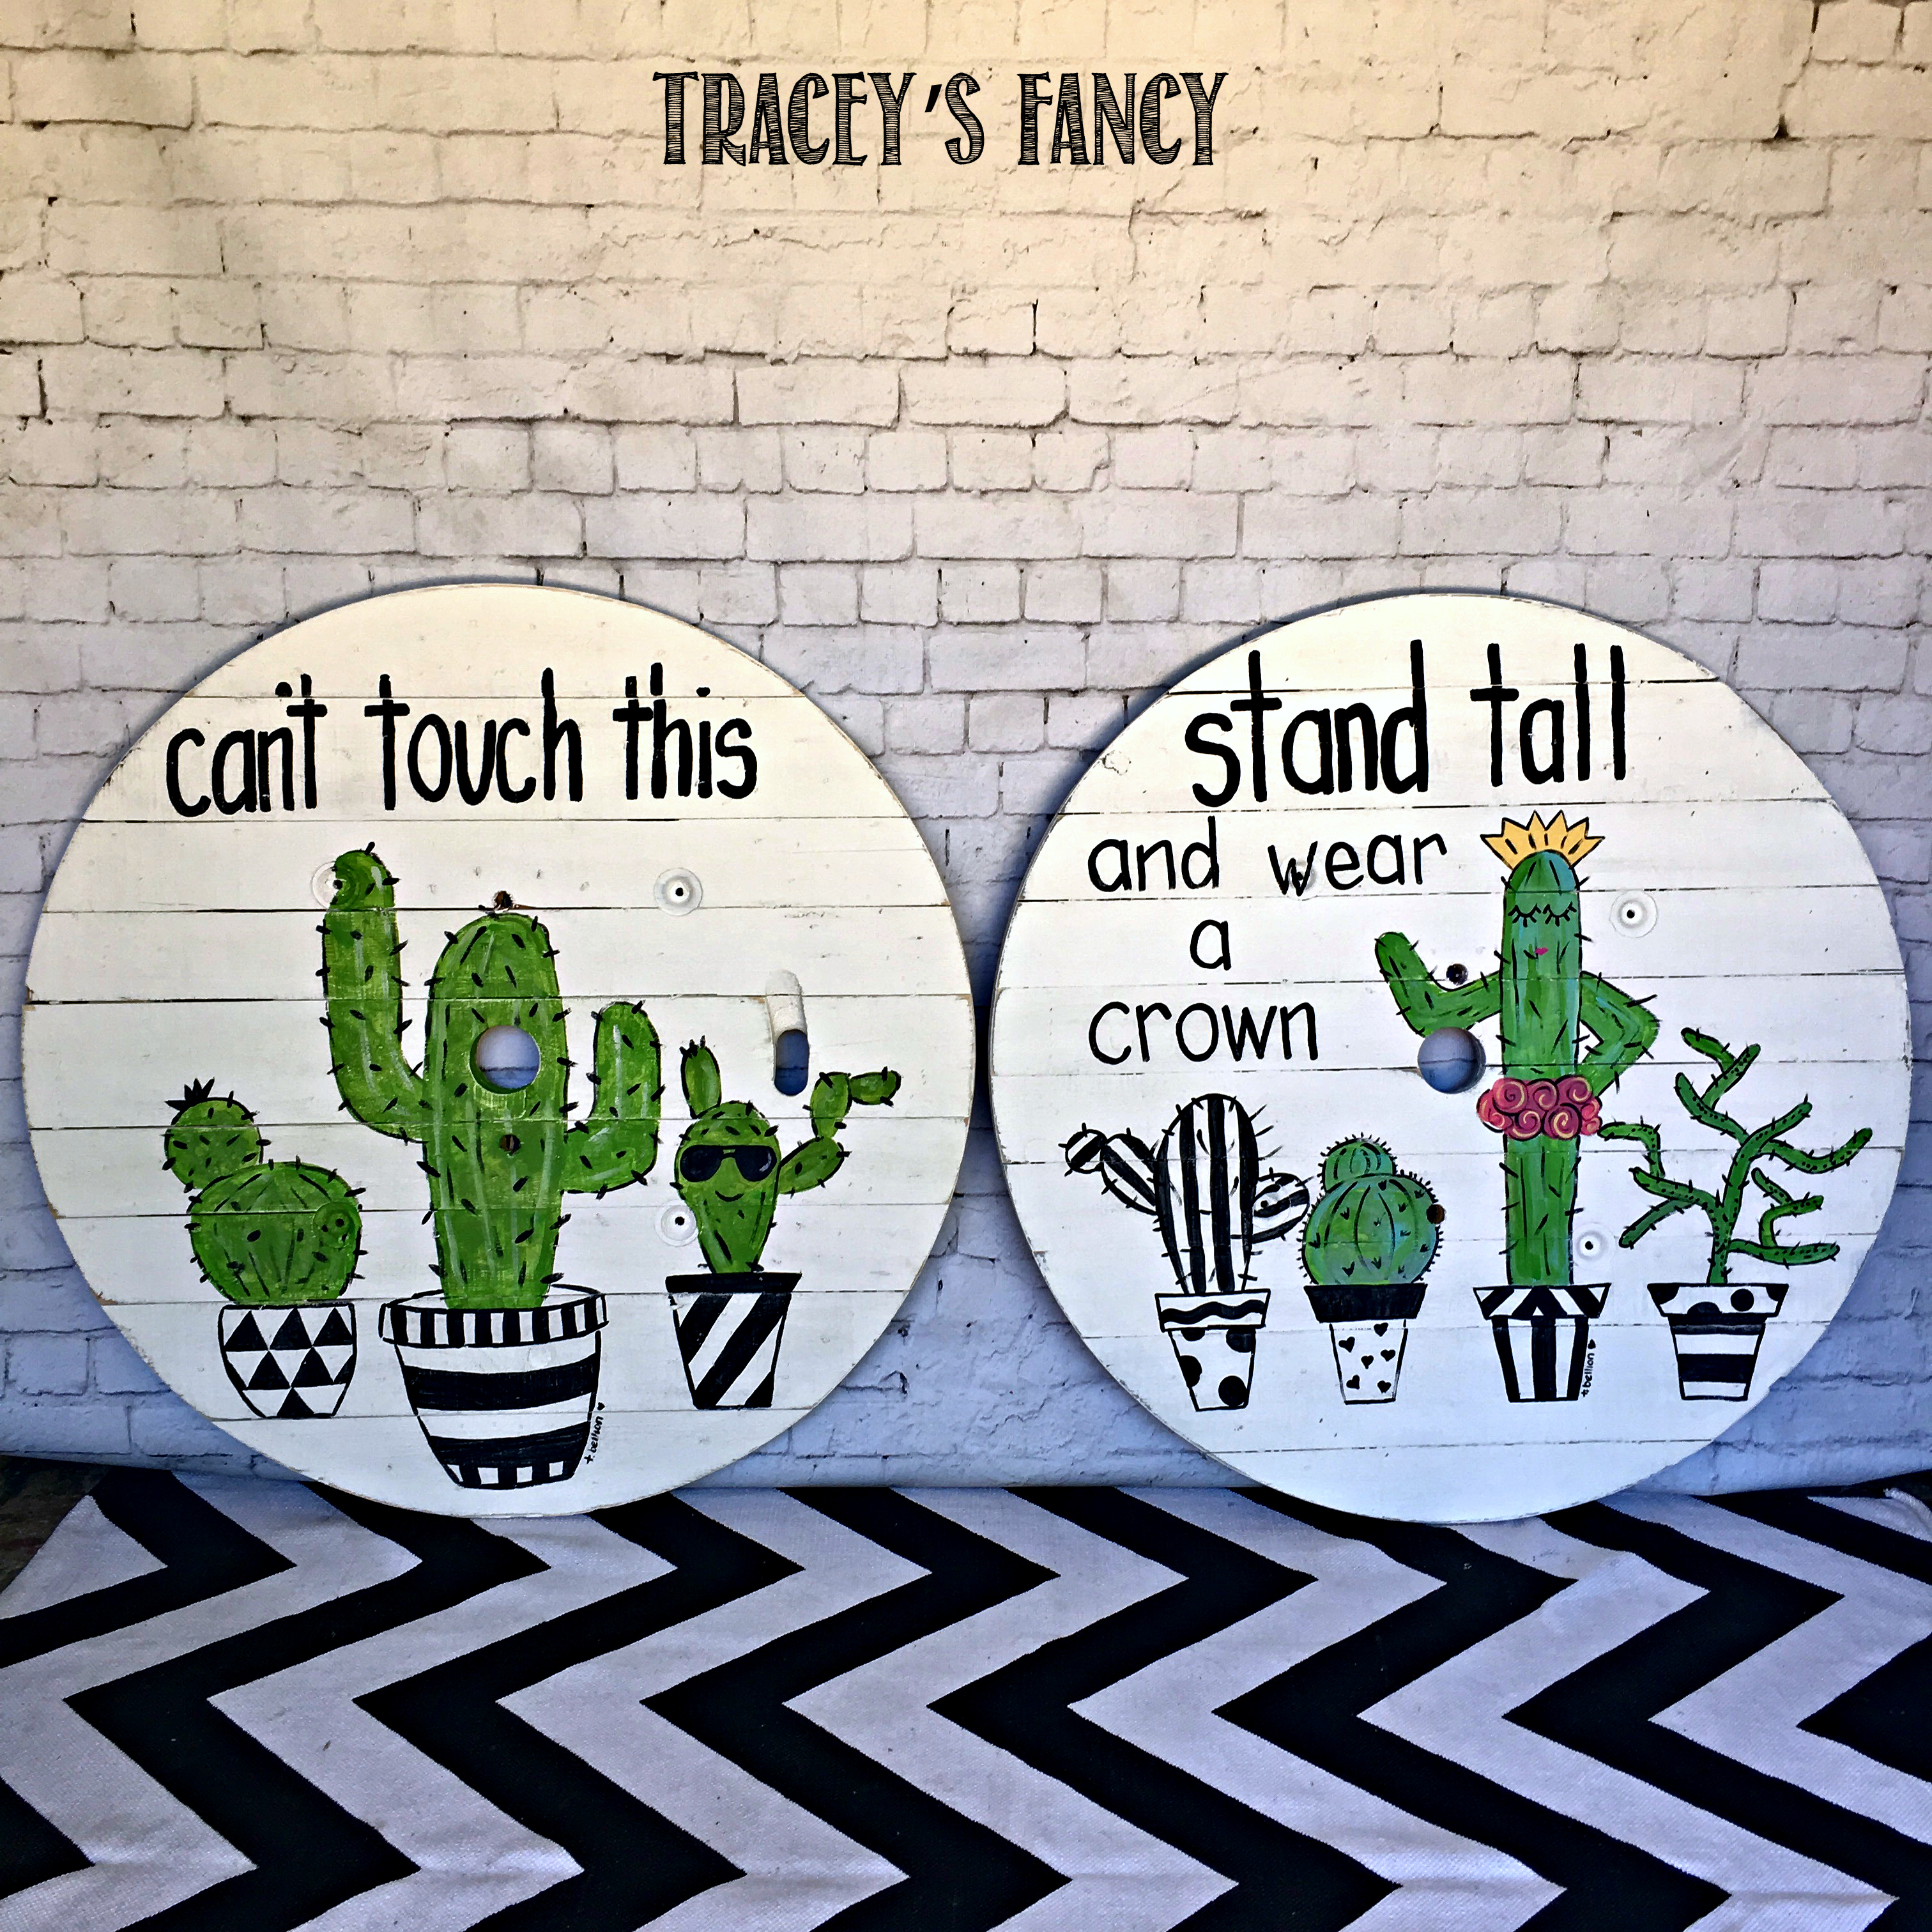 So Now Im Painting Cactus And Adding Sunglasses Phrases Decorating Pots Upcoming Blog Postdont Miss Itand Putting Polka Dots In Skiesoh